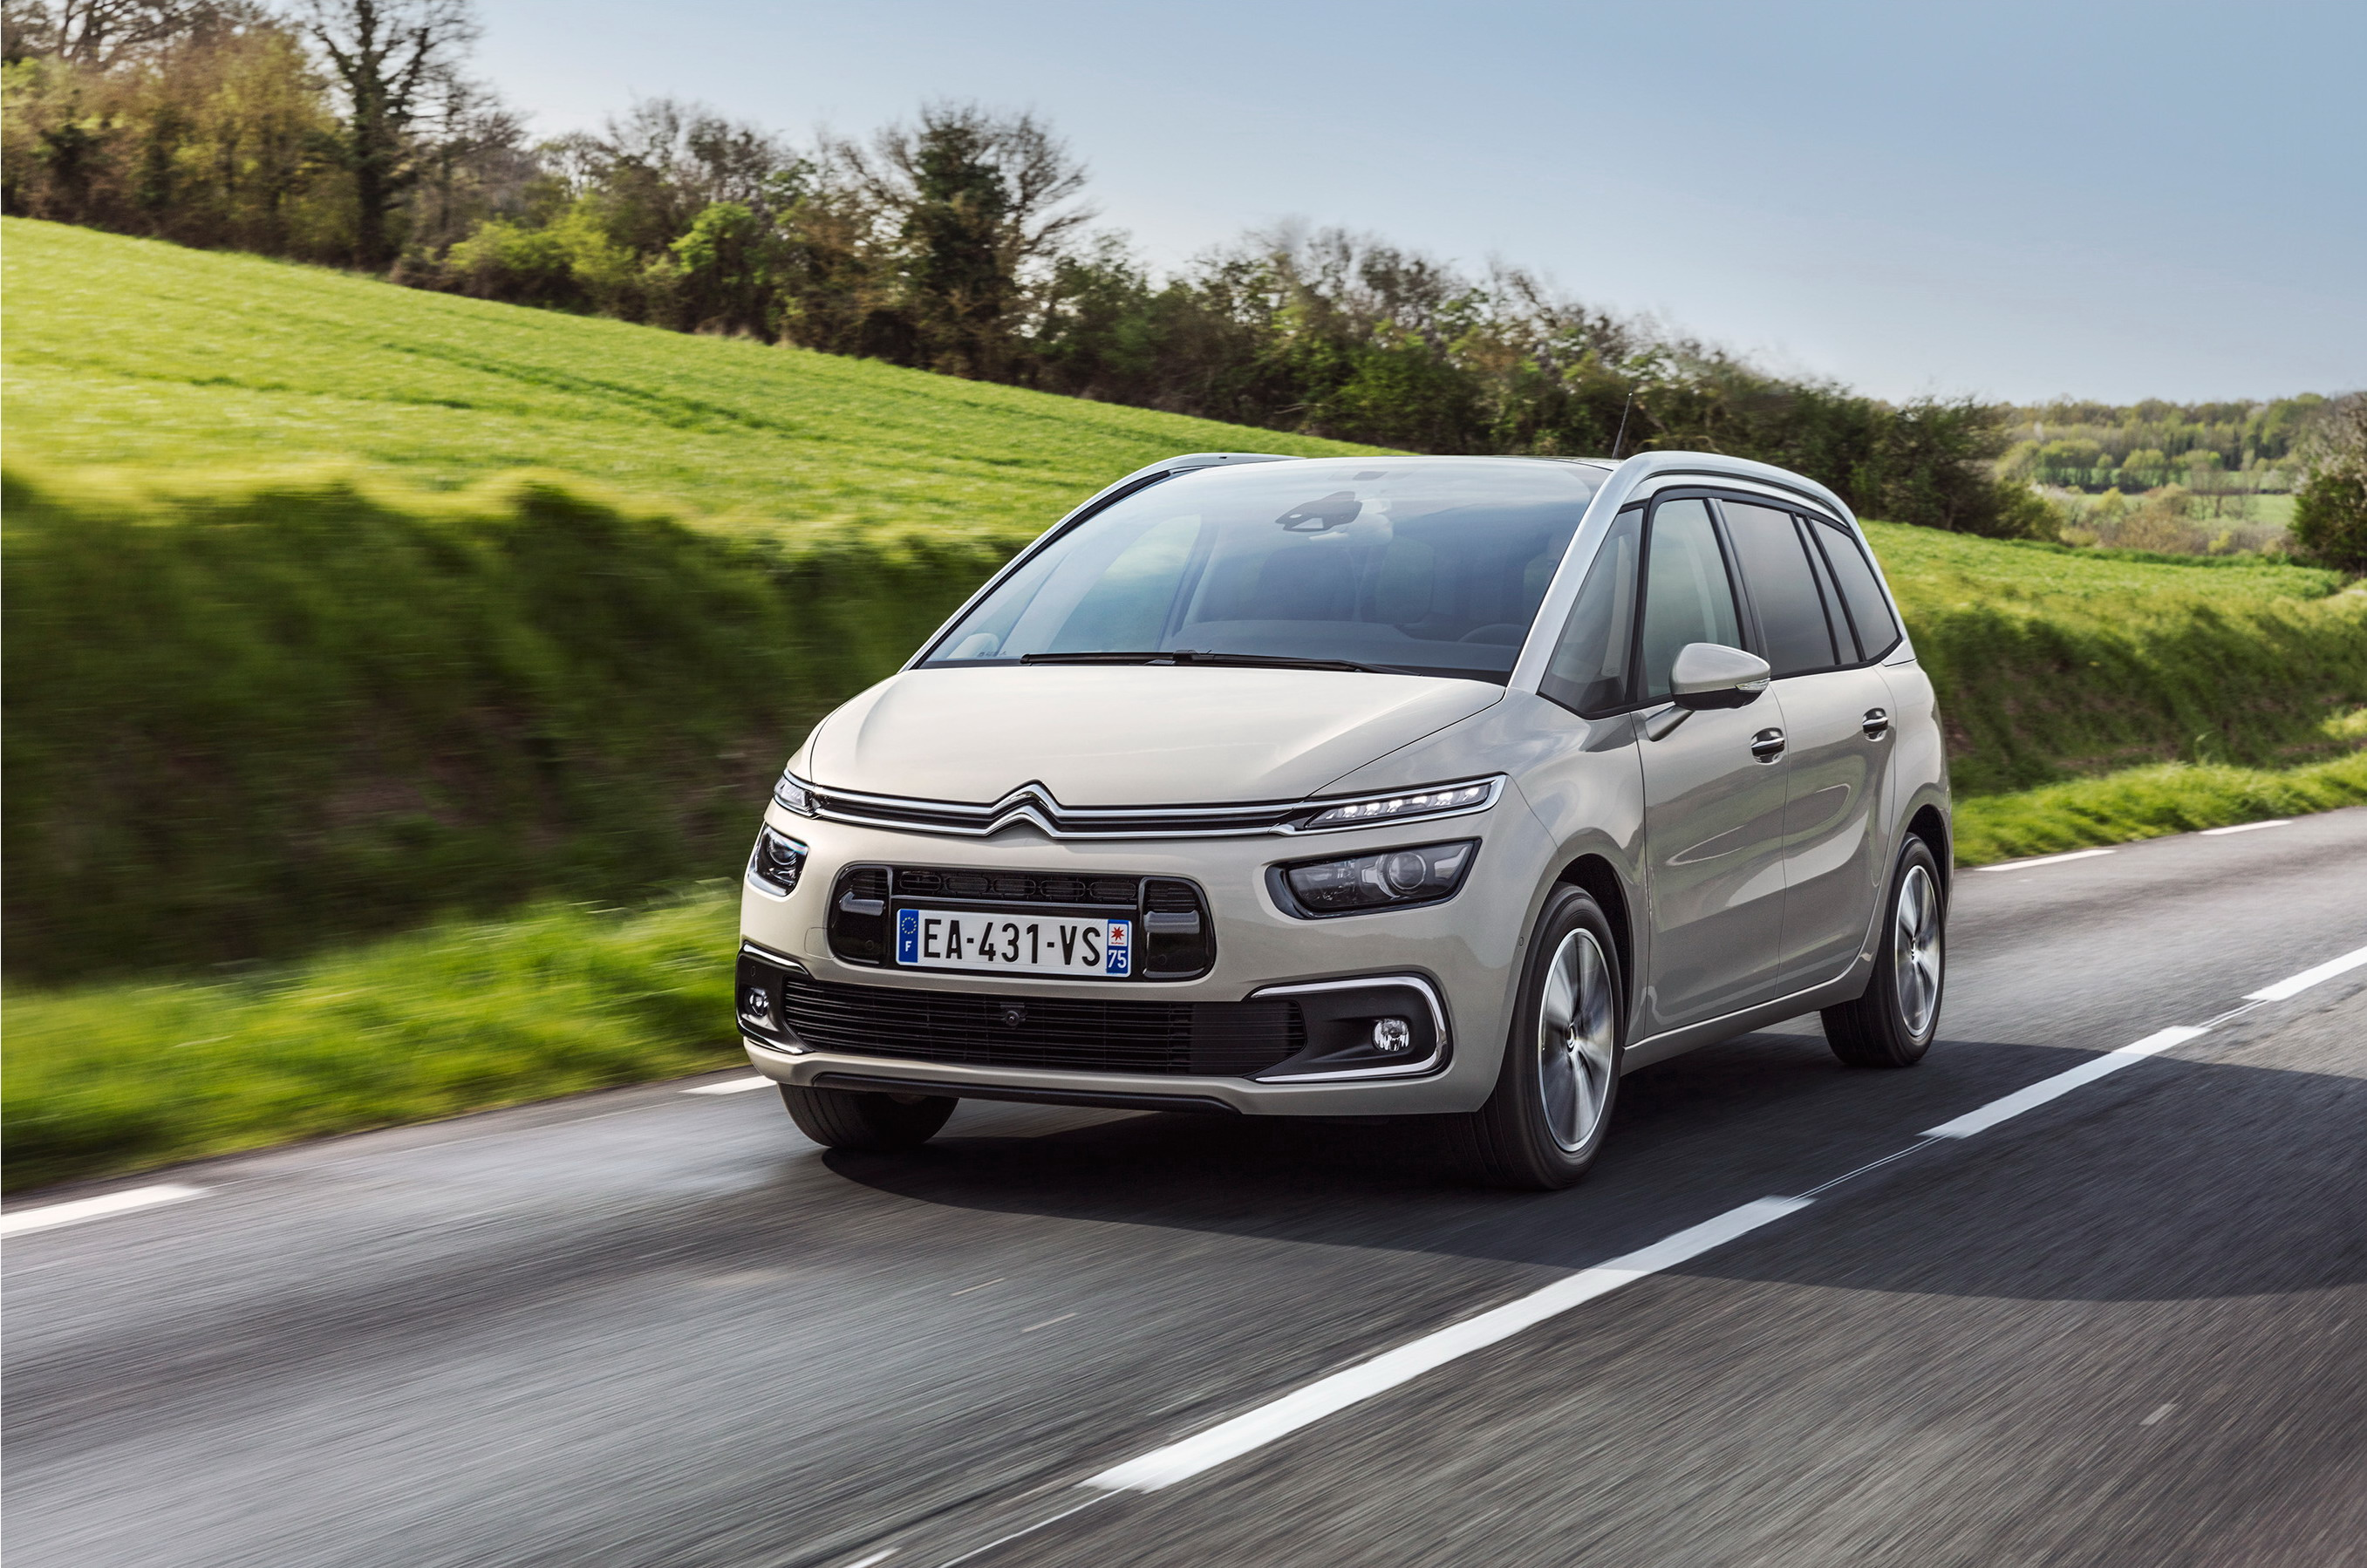 2013 citroen c4 grand picasso review gallery top speed. Black Bedroom Furniture Sets. Home Design Ideas